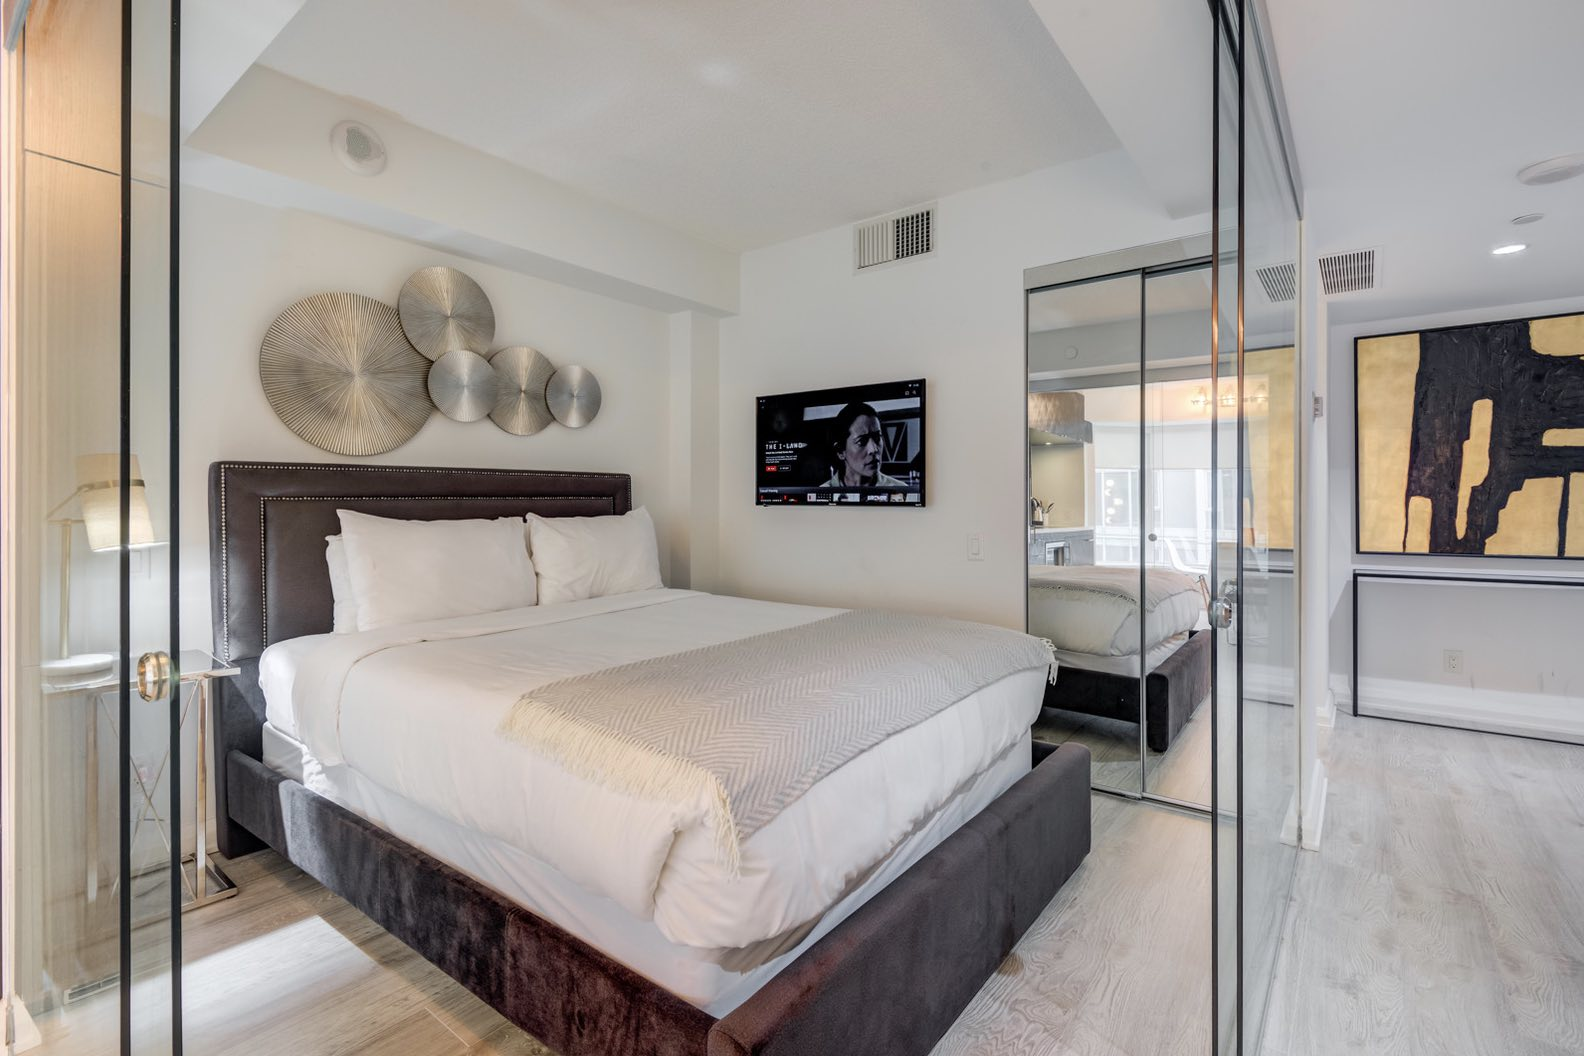 The Avalaon Yorkville bedroom with glass walls